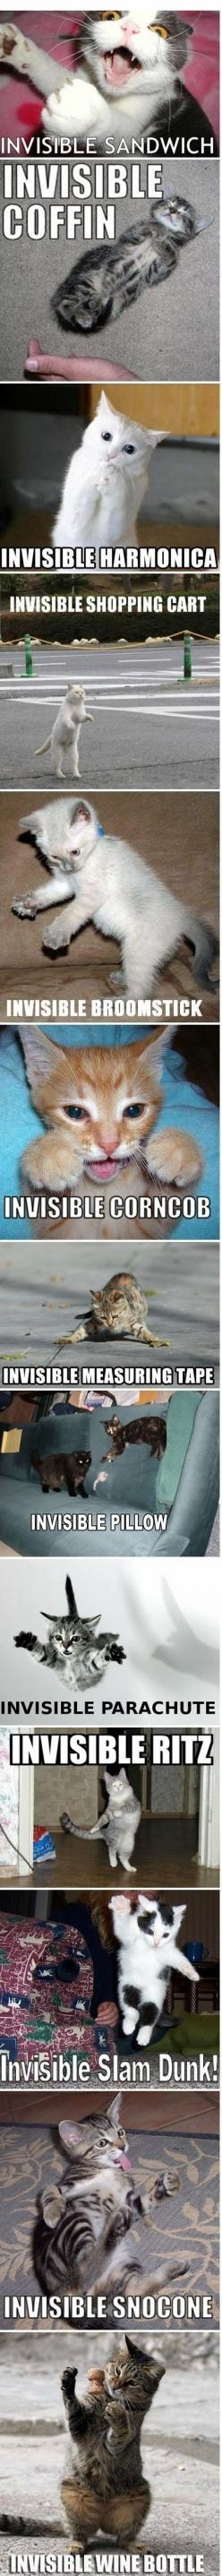 Invisible cat. So cute. Haha!! I thought of Johnny Cat.  :): Cats Humor, Animals, Funny Cats, Funny Stuff, Funnies, Funny Animal, Photo